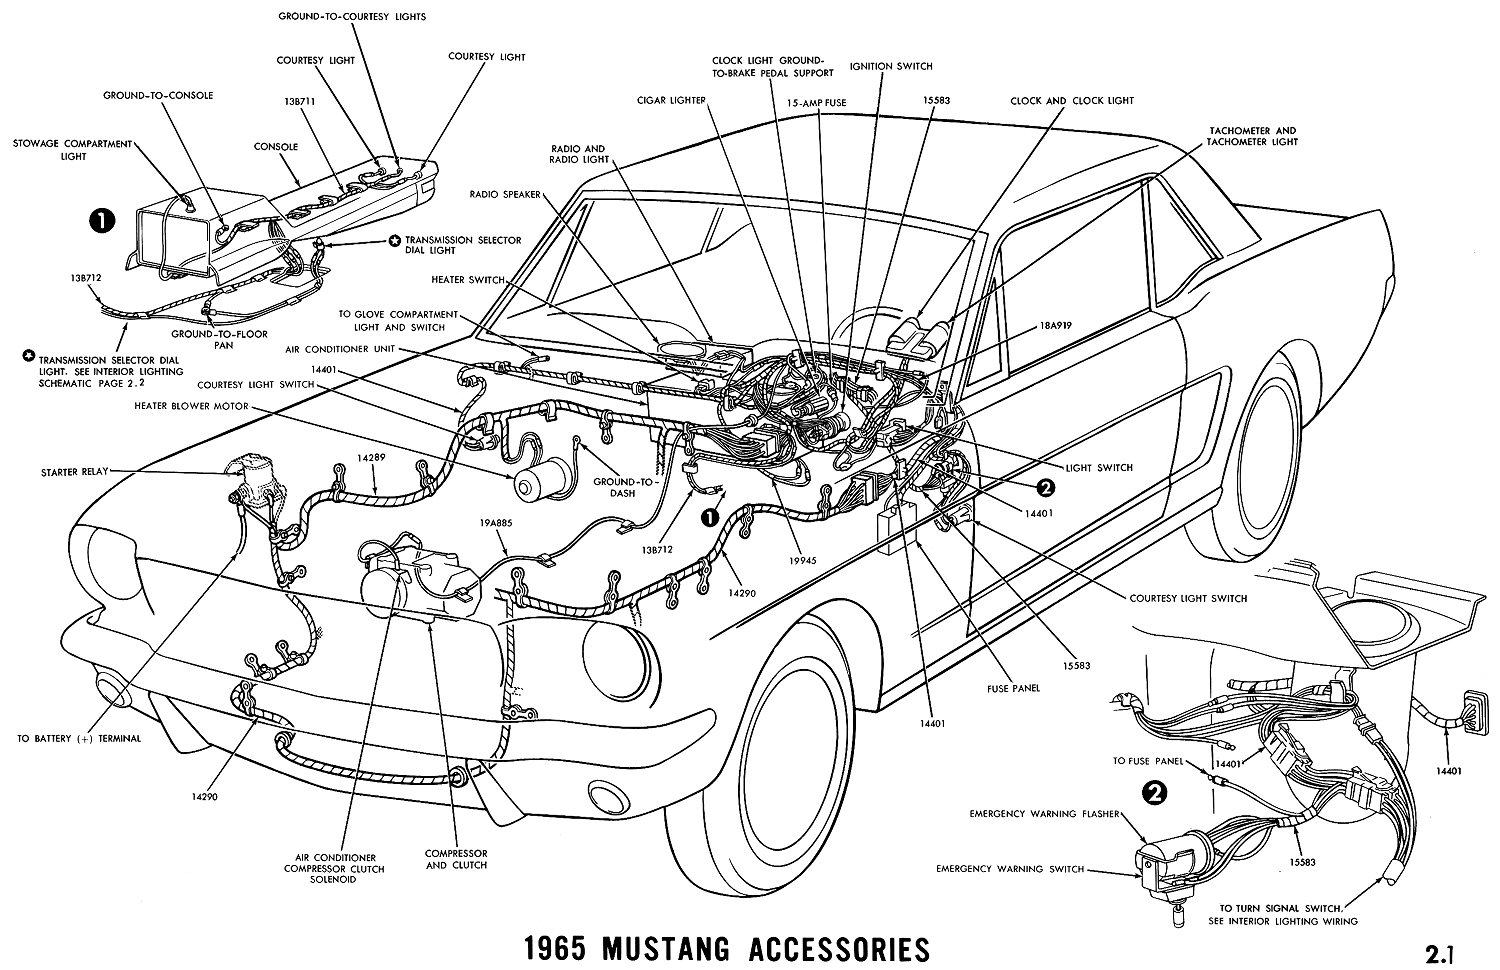 1965h 1965 mustang wiring diagrams average joe restoration 66 mustang ignition wiring diagram at crackthecode.co